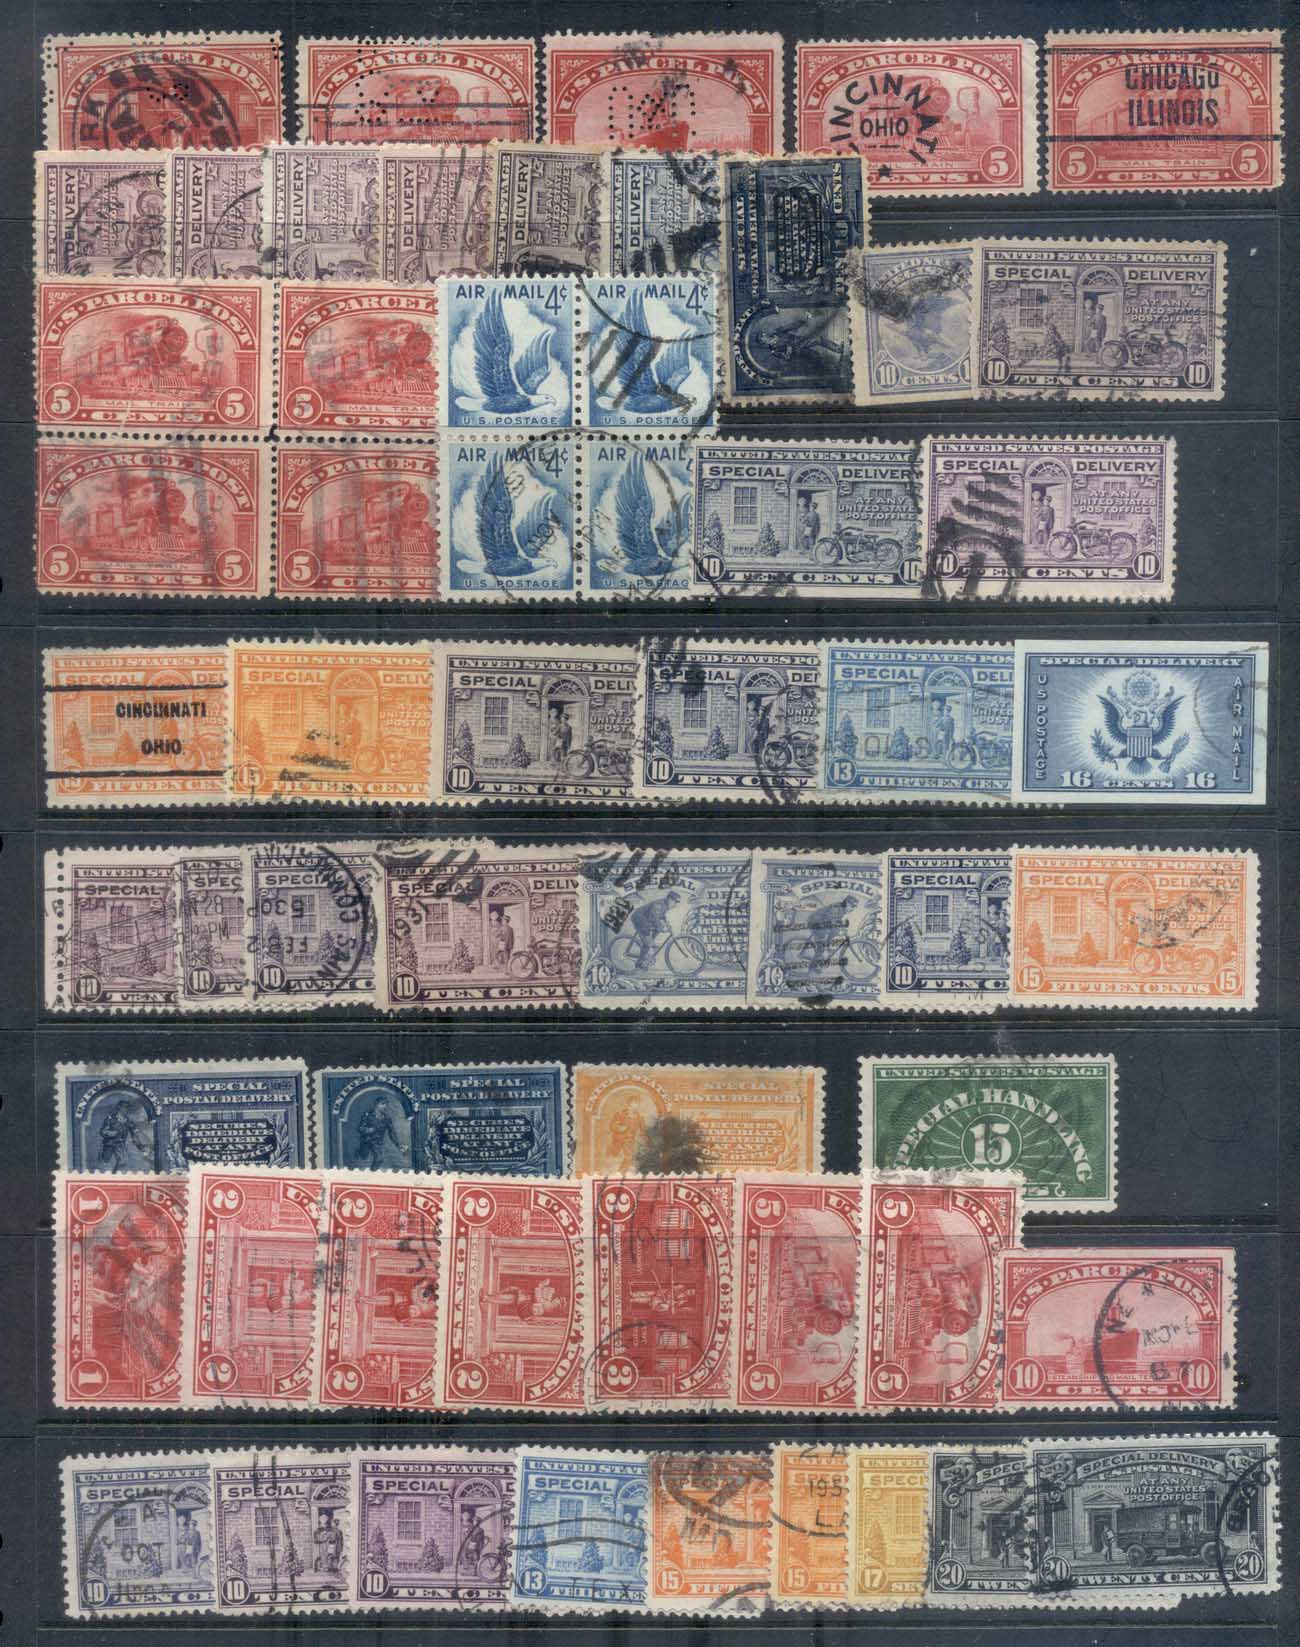 USA Back of Book, Assorted Oddments, Air Mail, Express, Postage Dues 12 scans